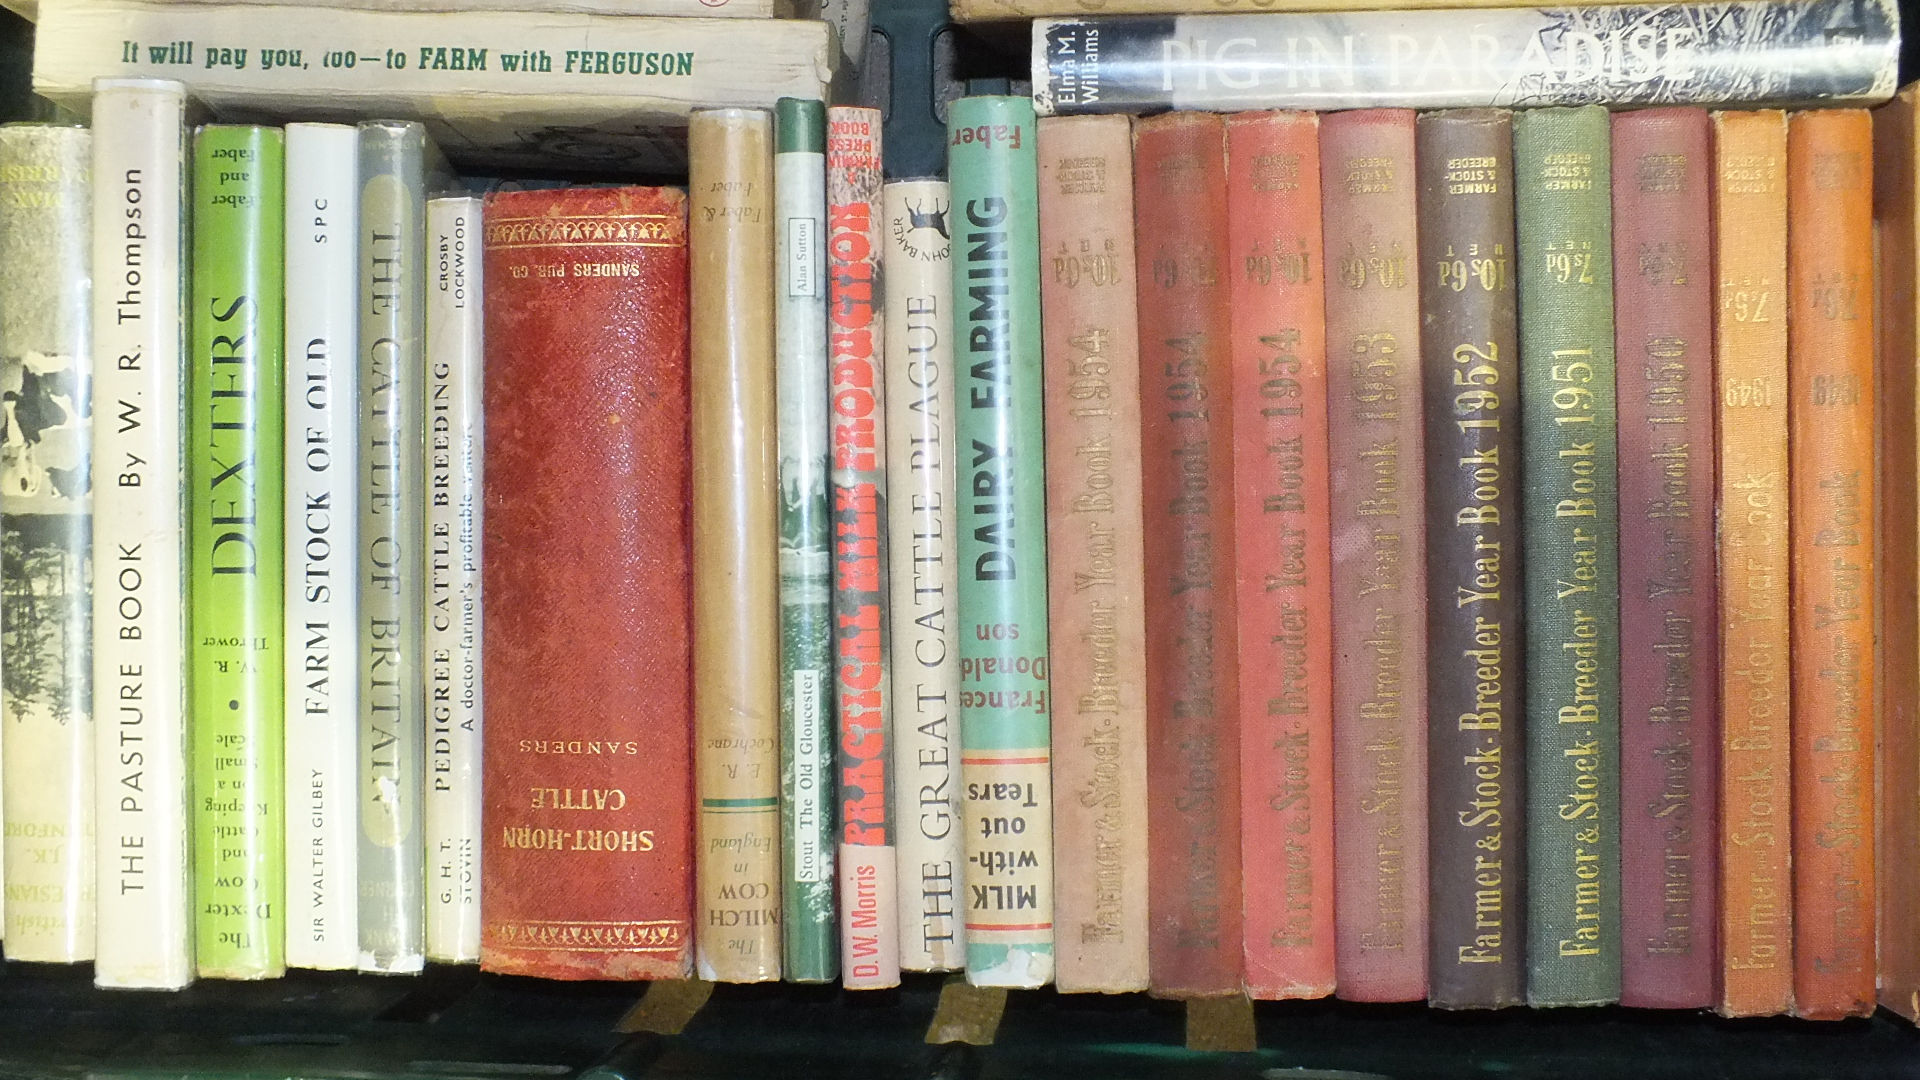 Lot 10 - Farmer and Stock Breeder Year Books, 1949 (2), 1950-1953, 1954 (3) and a quantity of books on cattle